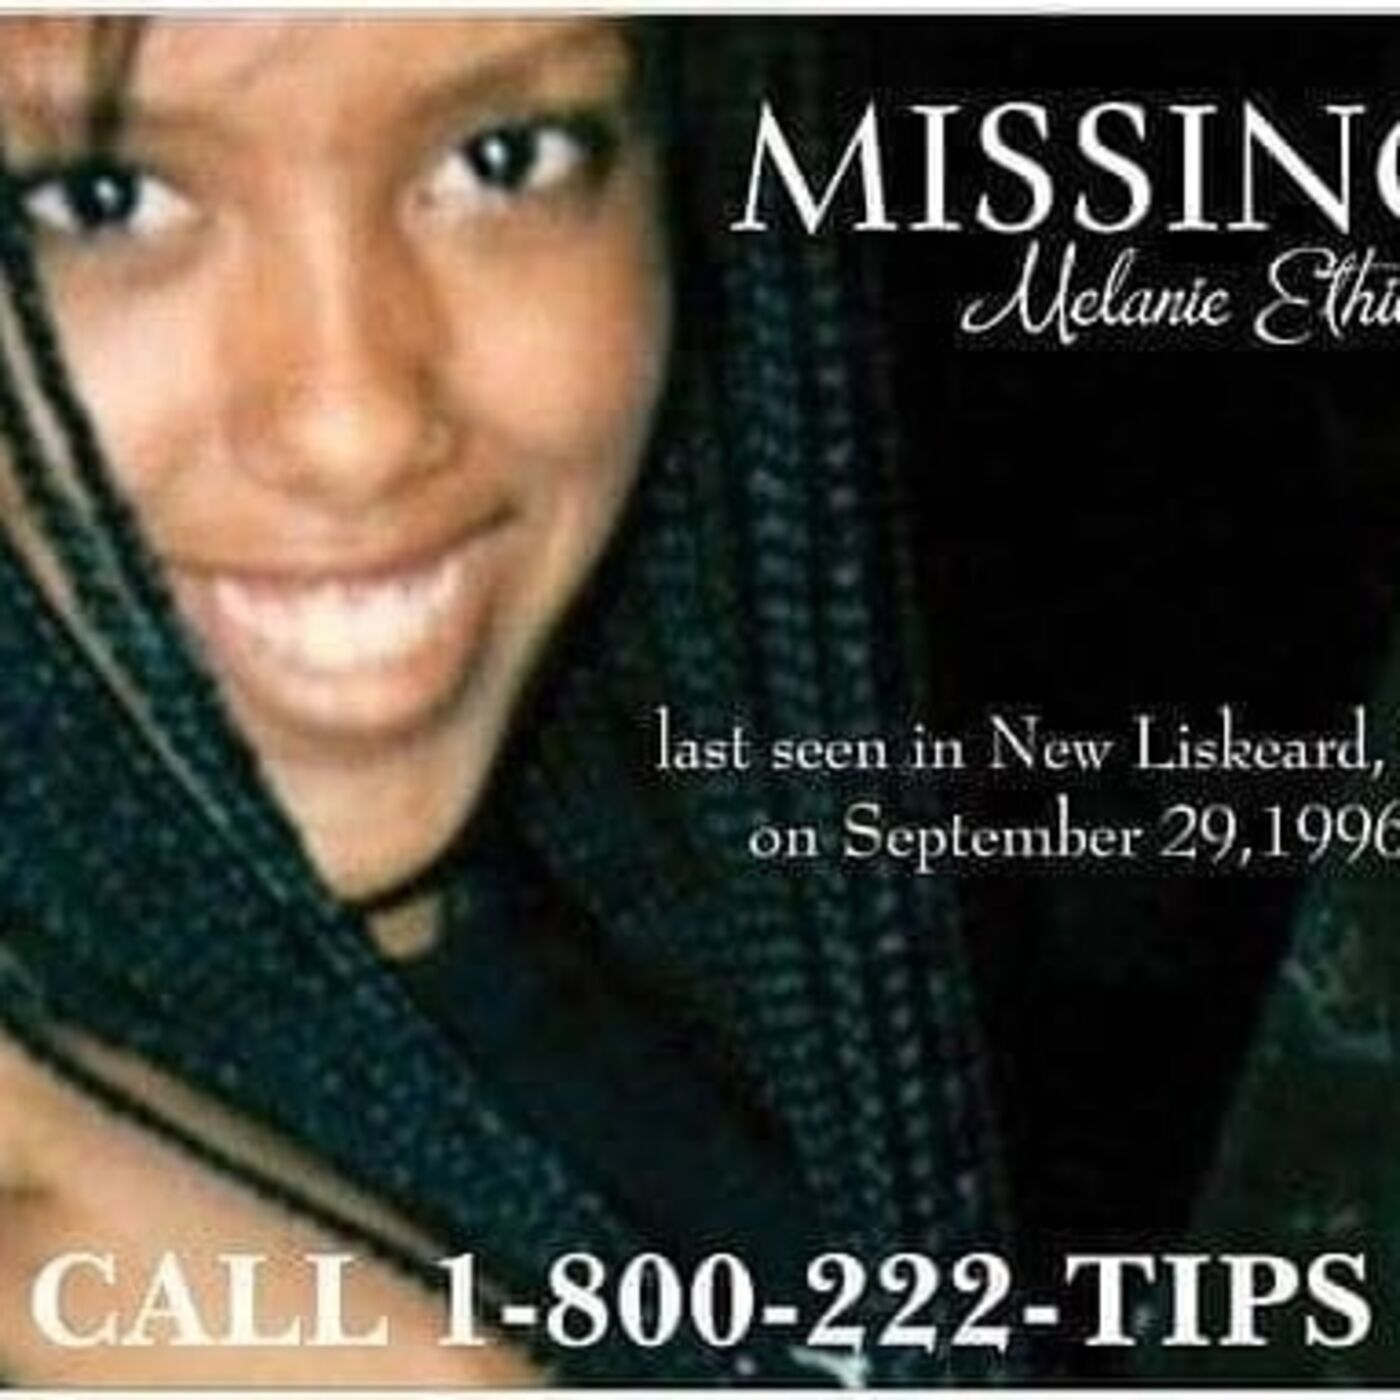 S1 E3 We Need Your Help To Find Melanie Ethier